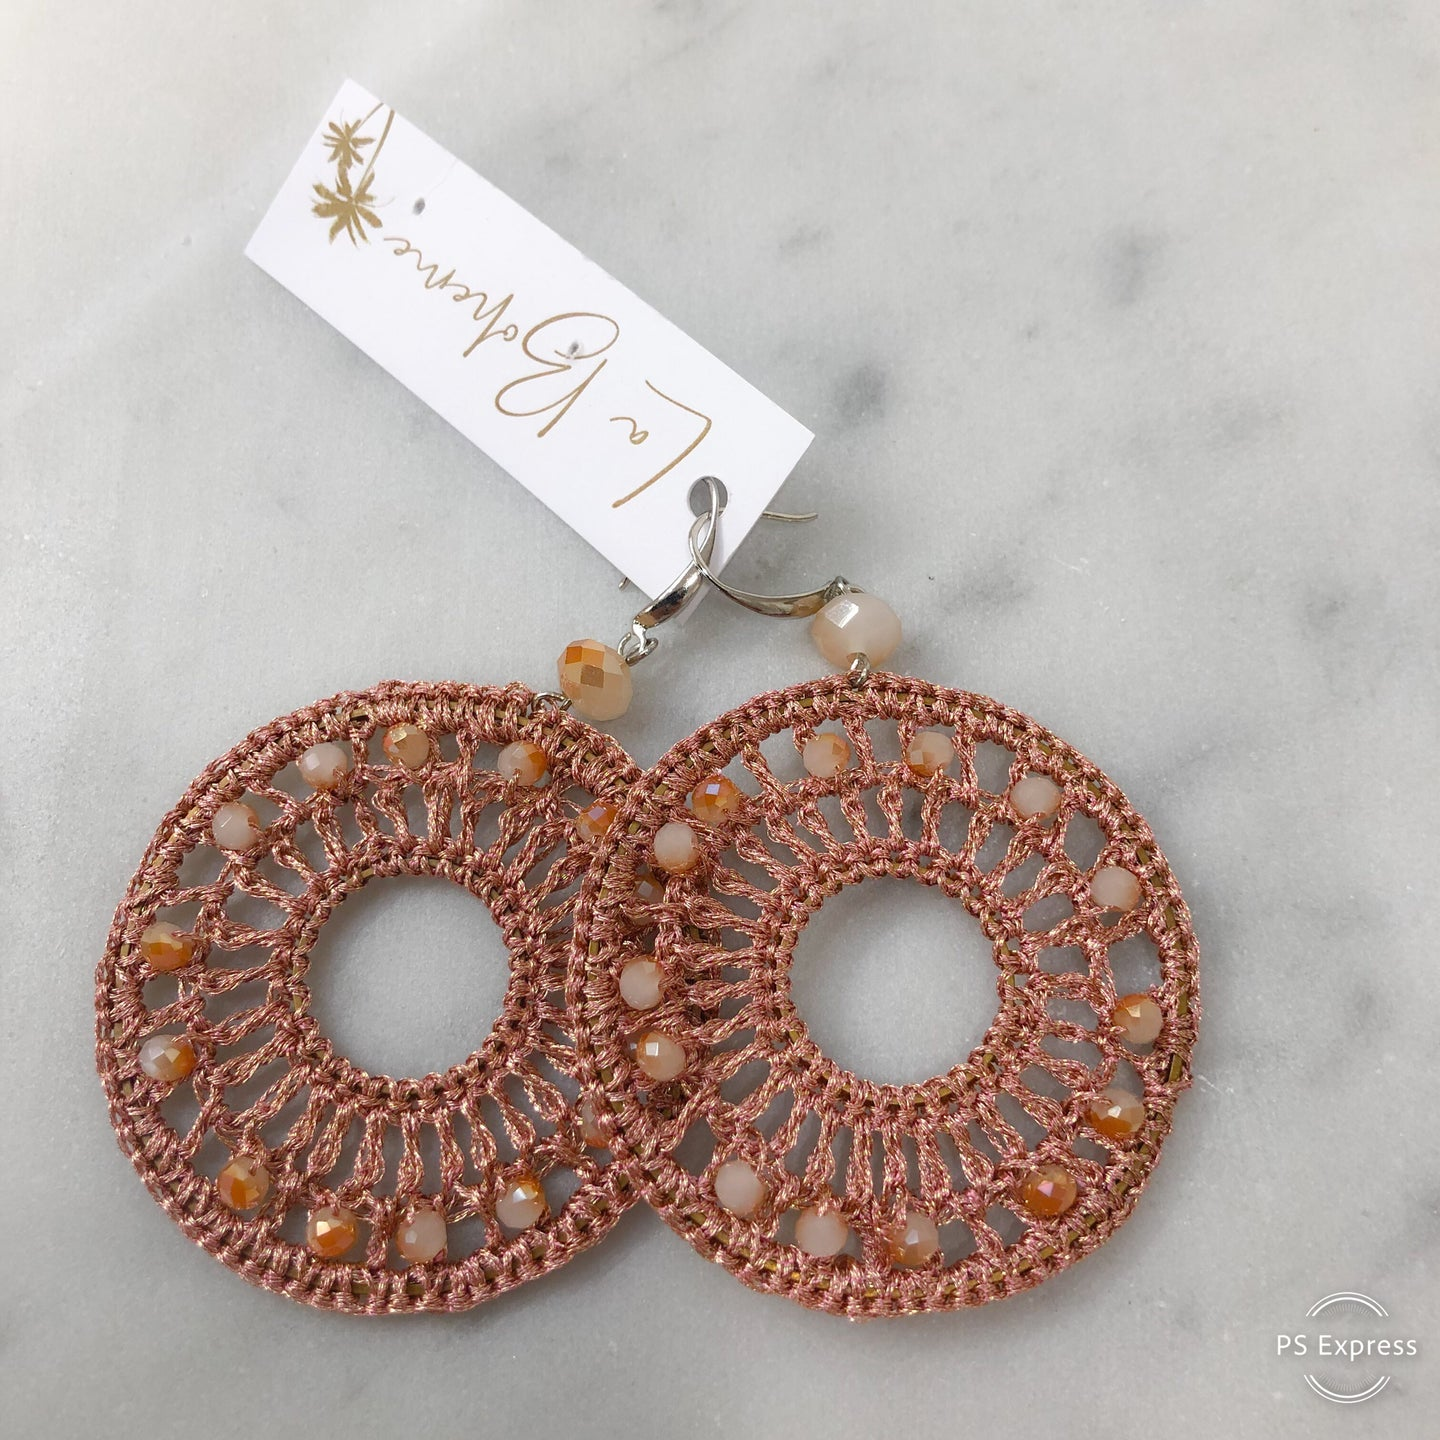 Adorne Dream Catcher Beaded Hook Earrings